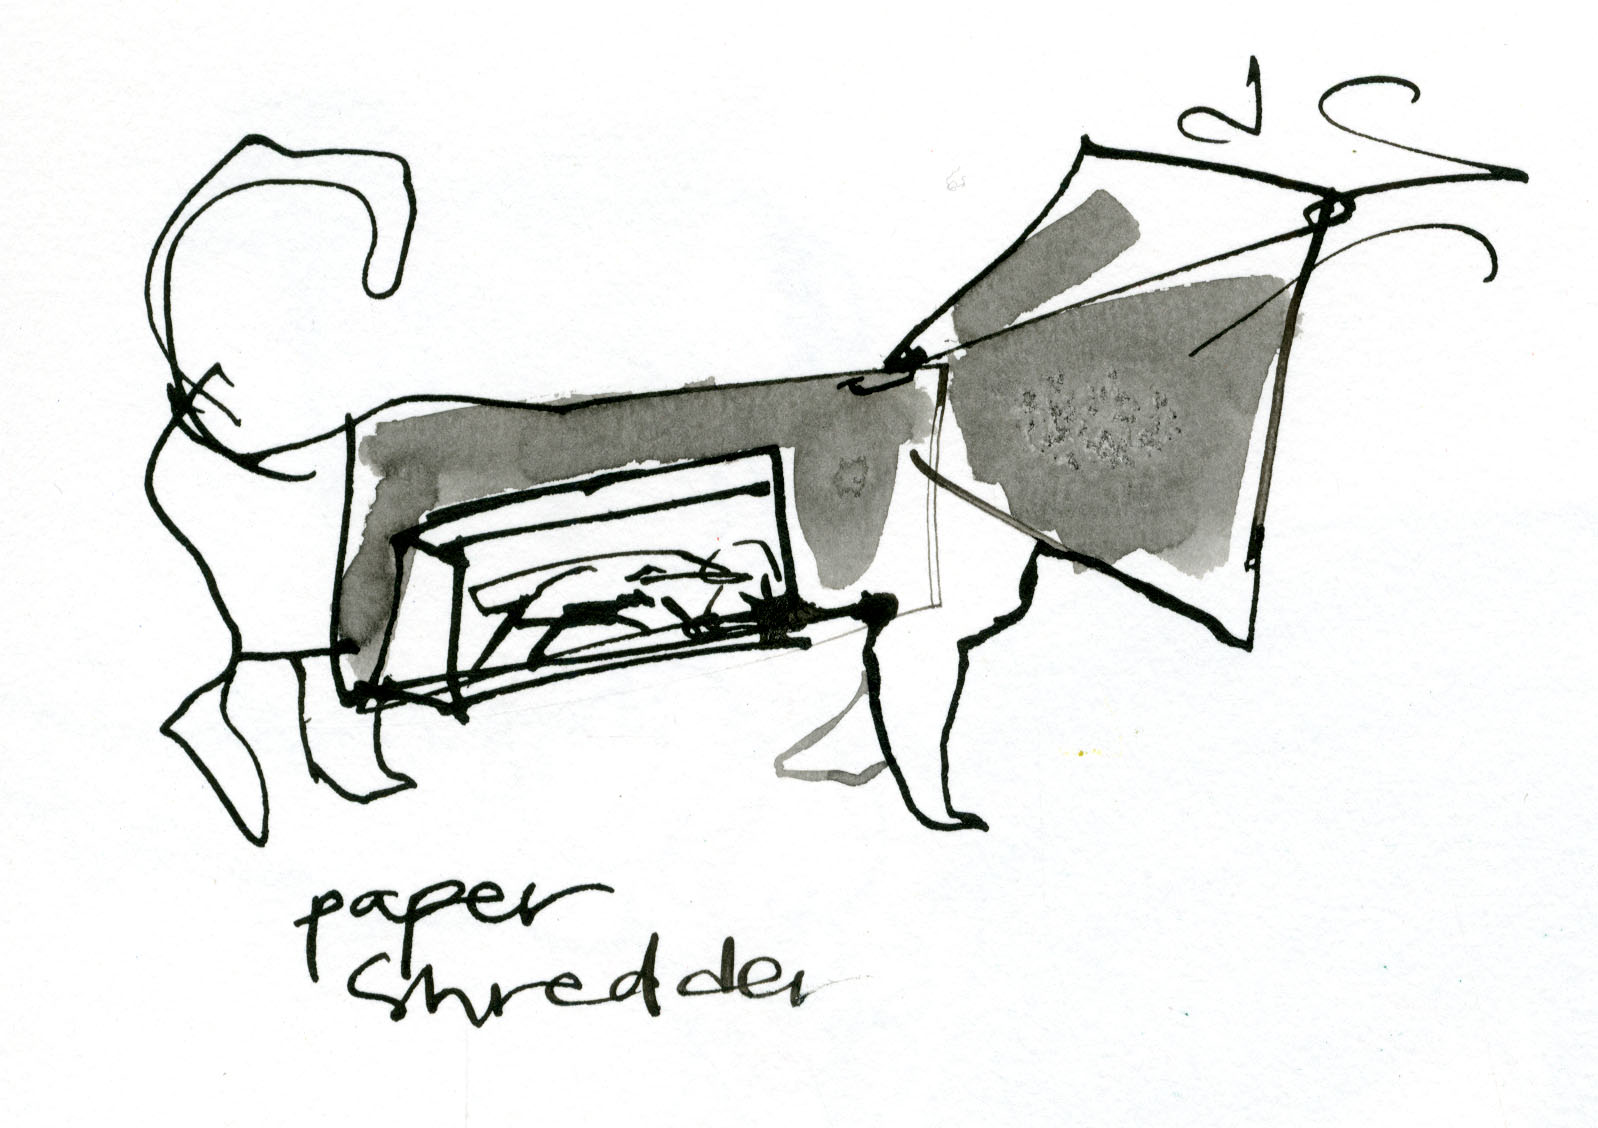 Paper shredder © Carly Larsson 2014